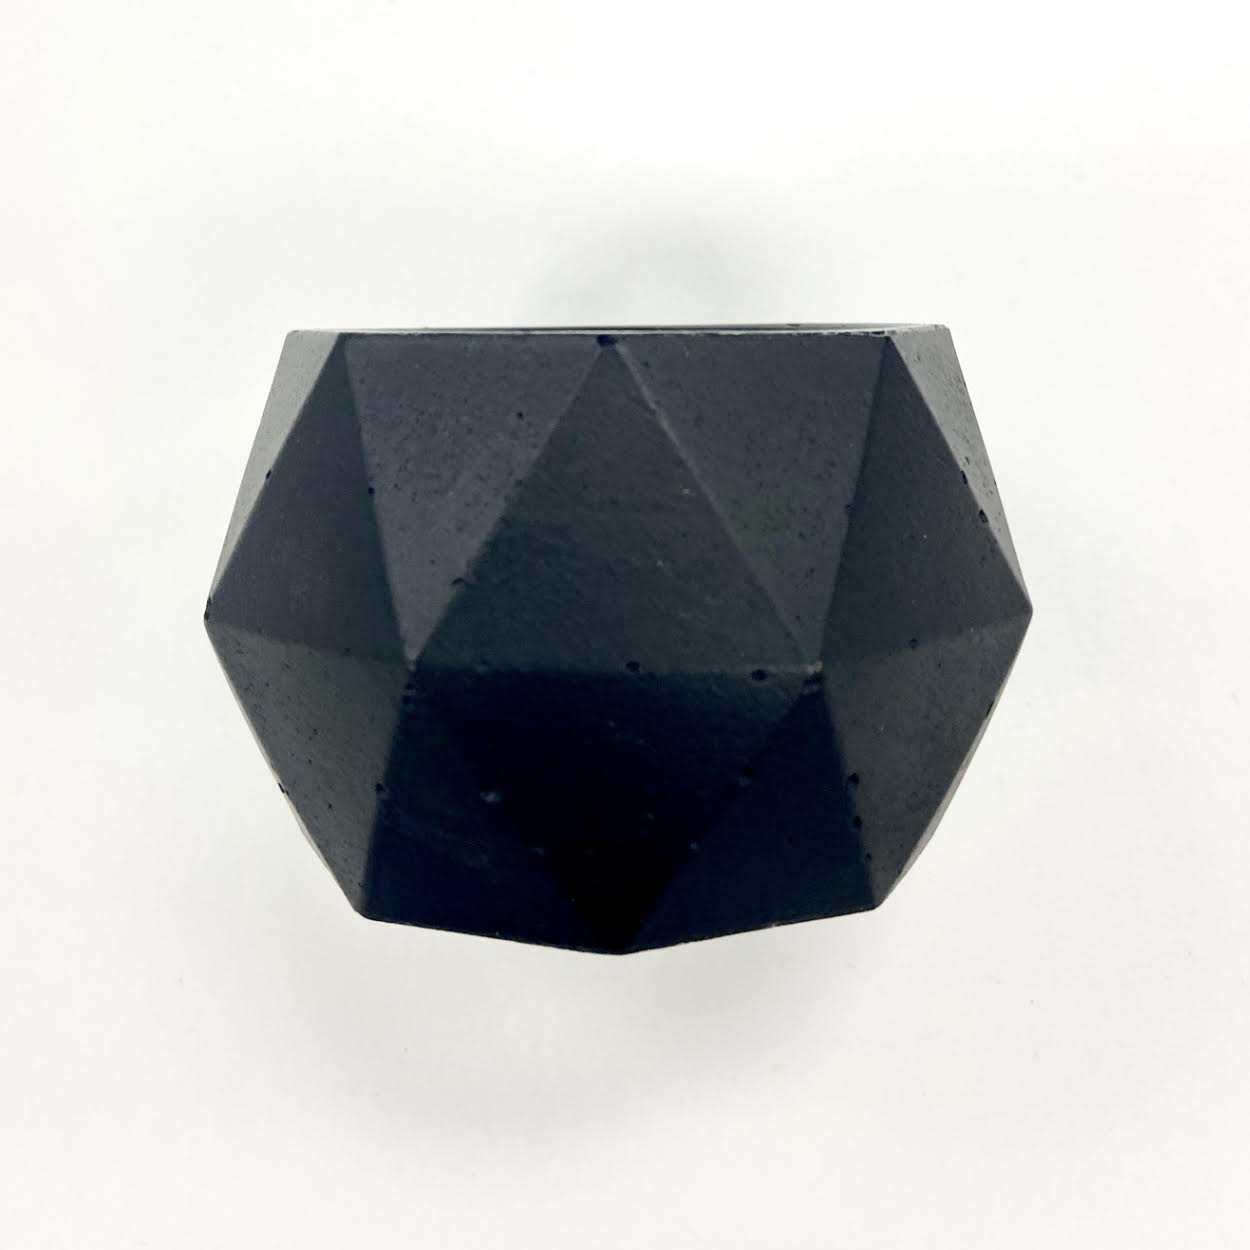 Image of a black Geometric Candle Holder